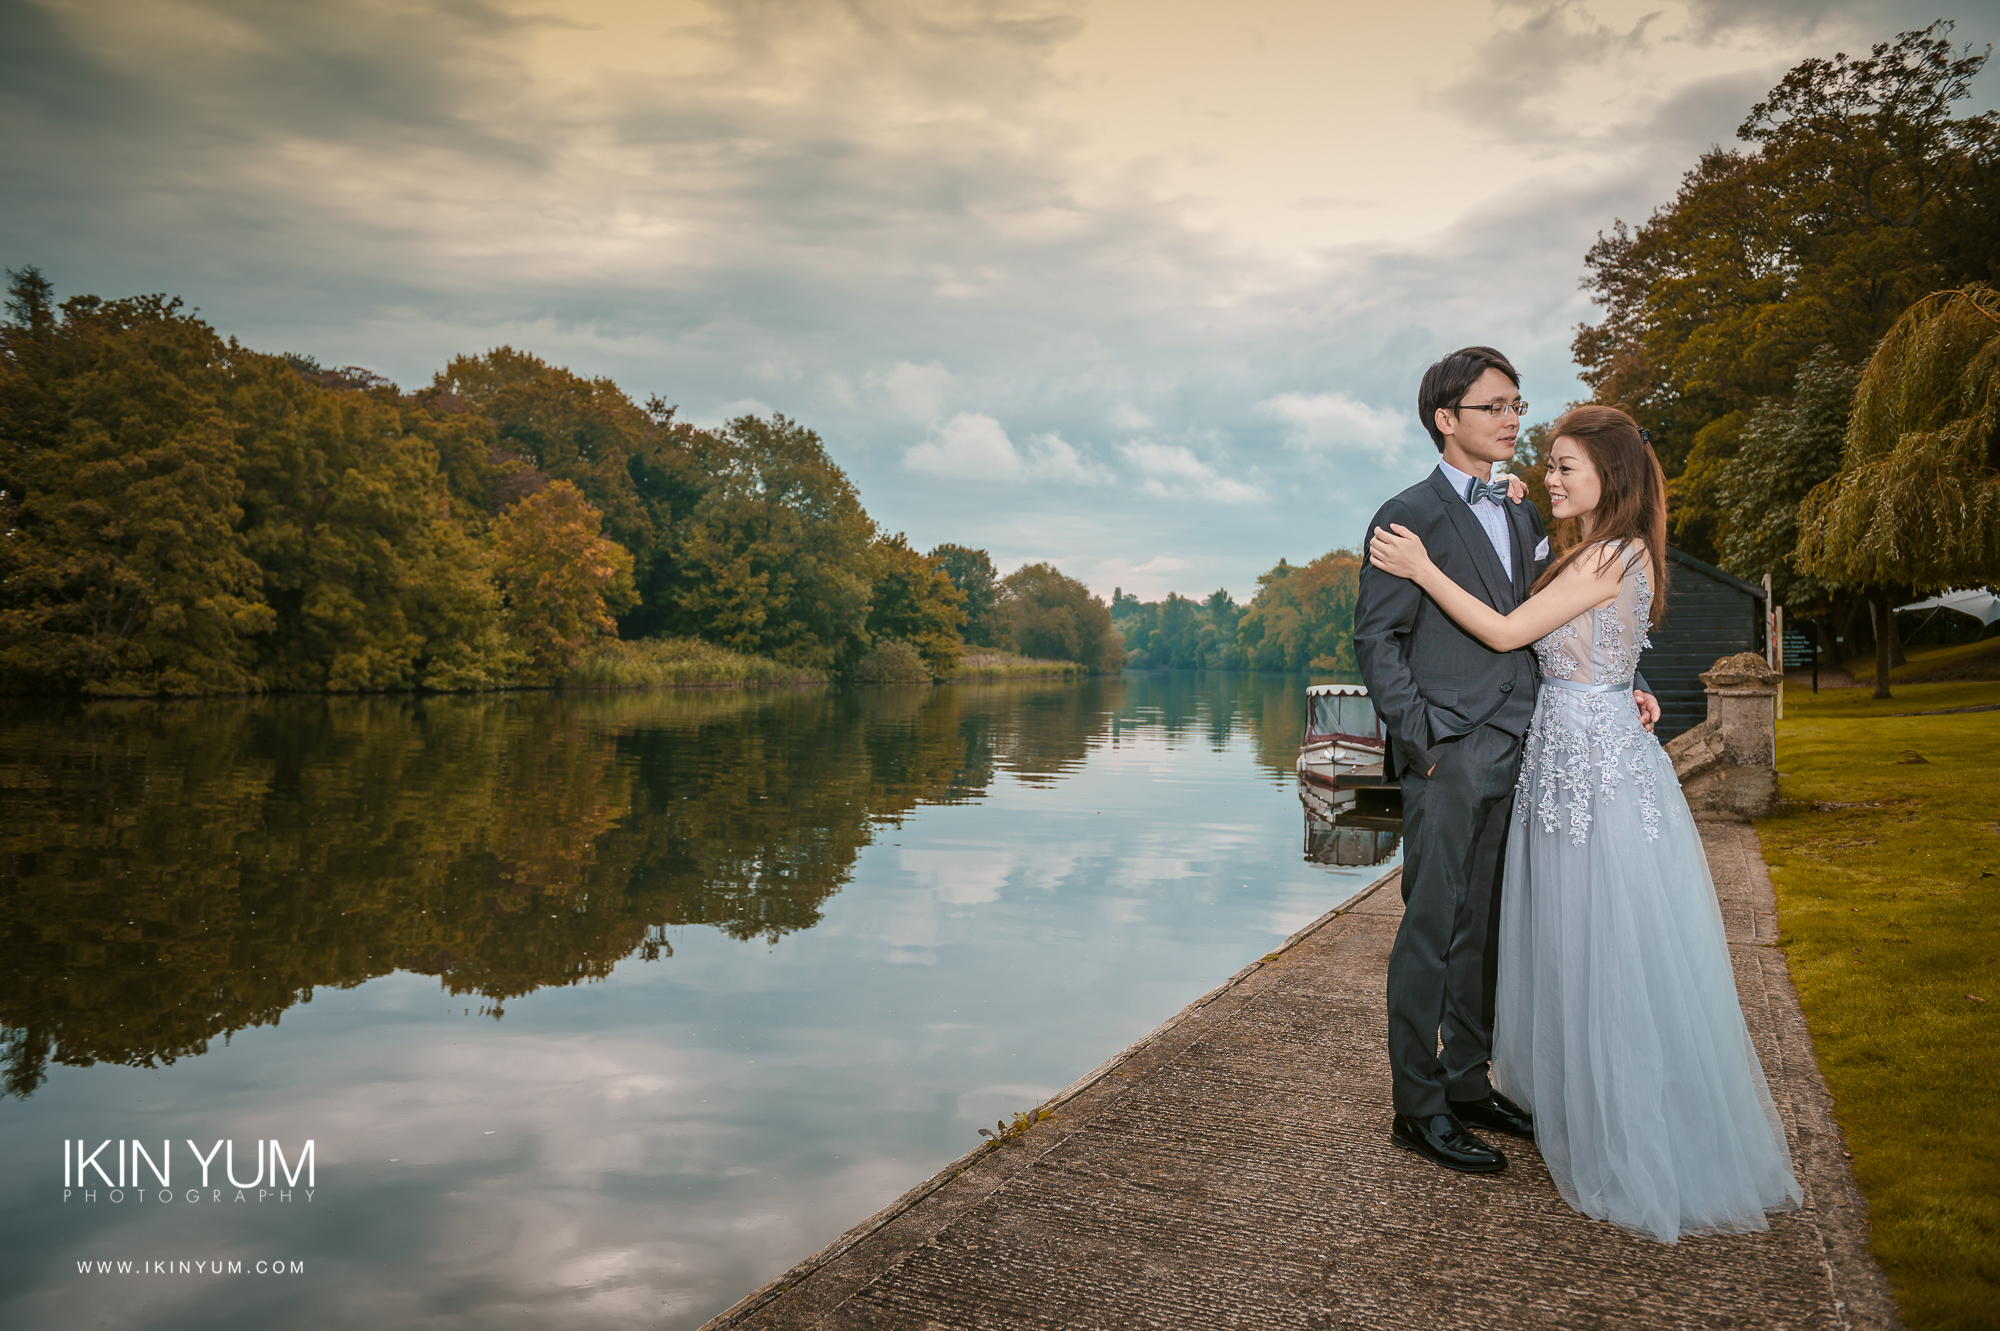 The oakley court Pre-Wedding Shoot - Ikin Yum Photography-002.jpg